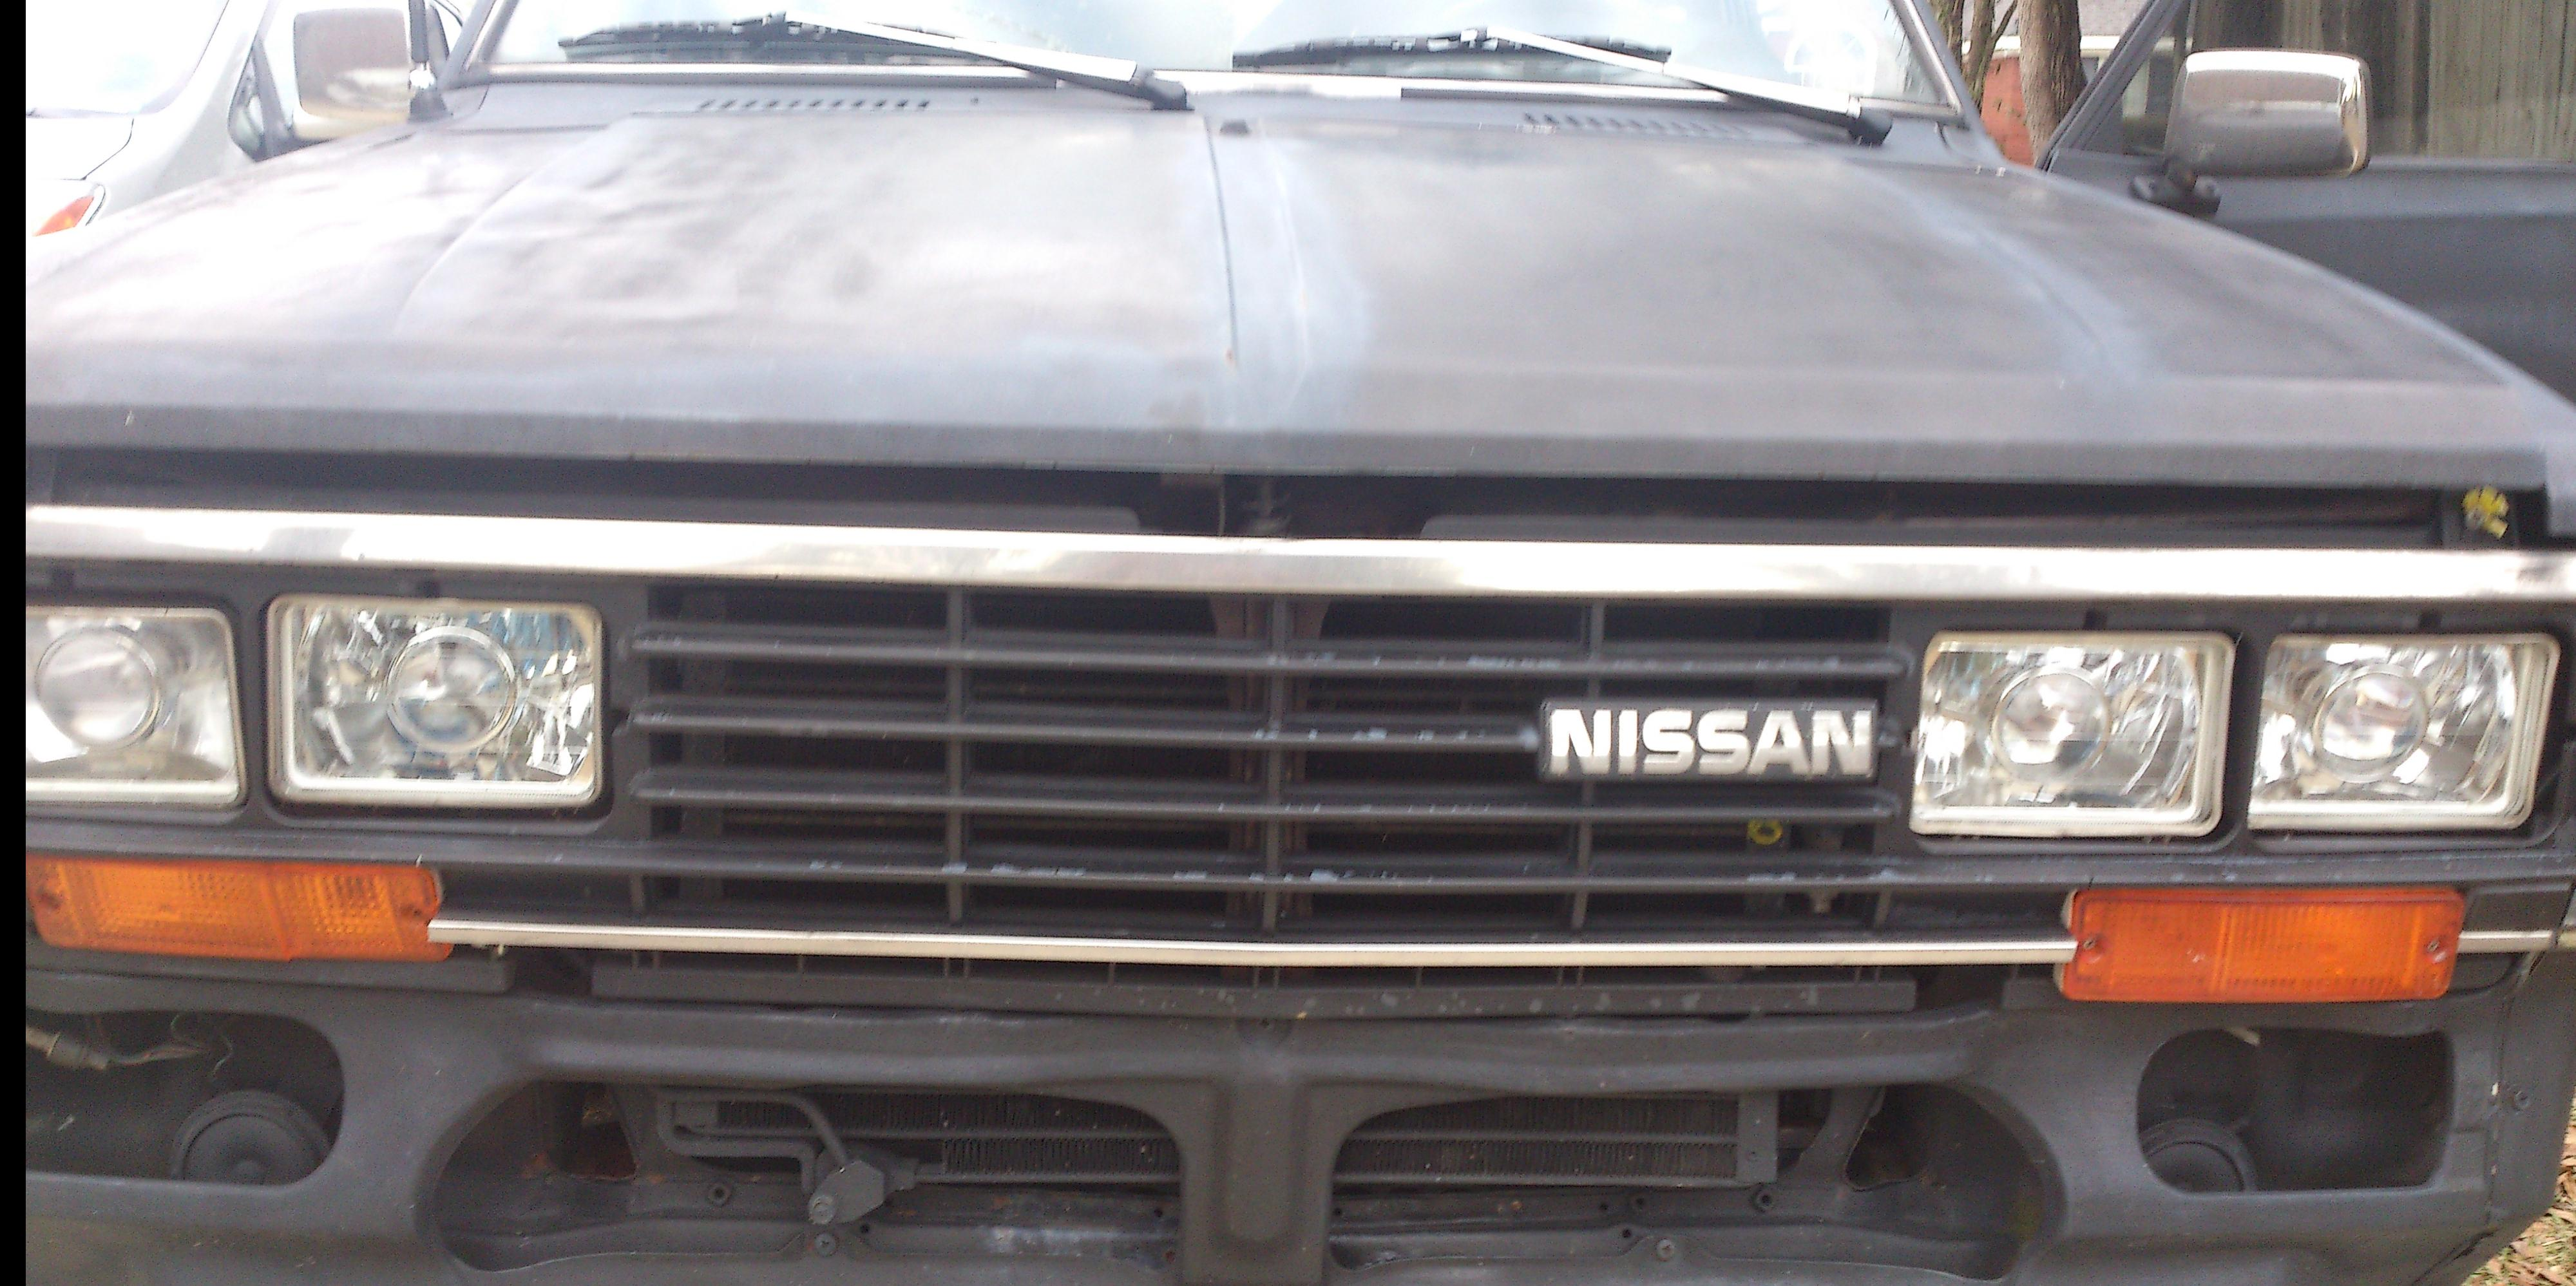 emphias 1985 Nissan 720-Pick-Up